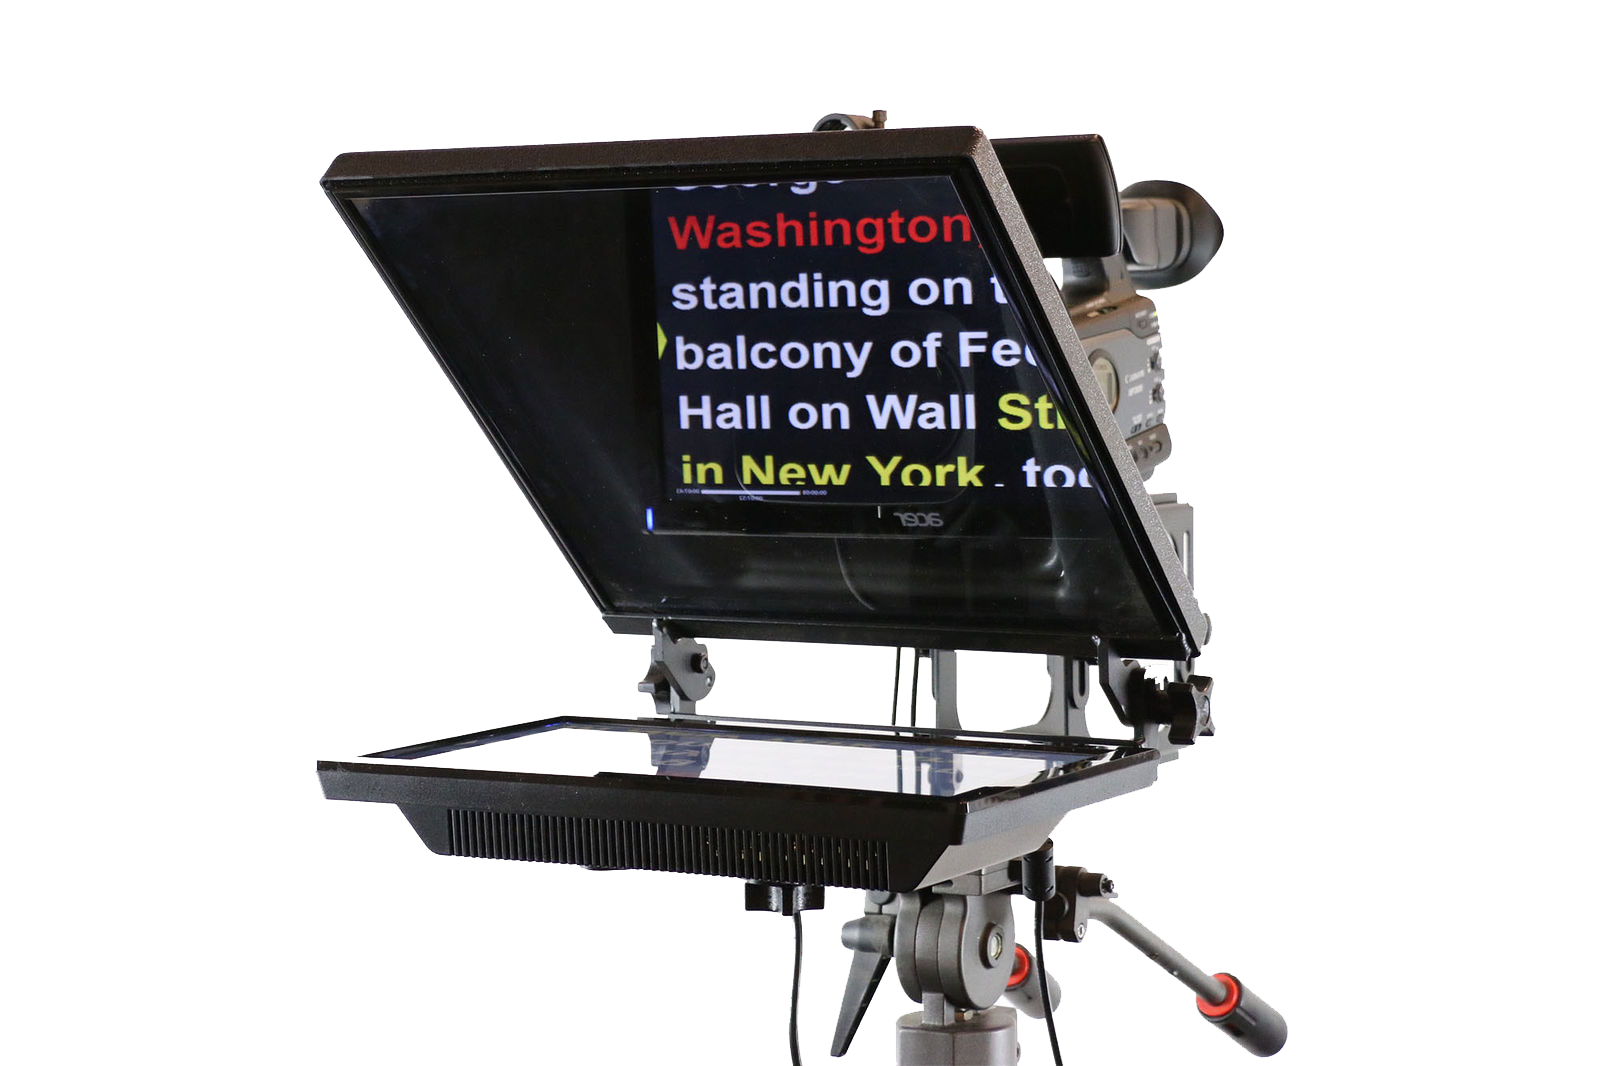 Corpus Christi, on-camera mount teleprompter, operator, rental, service